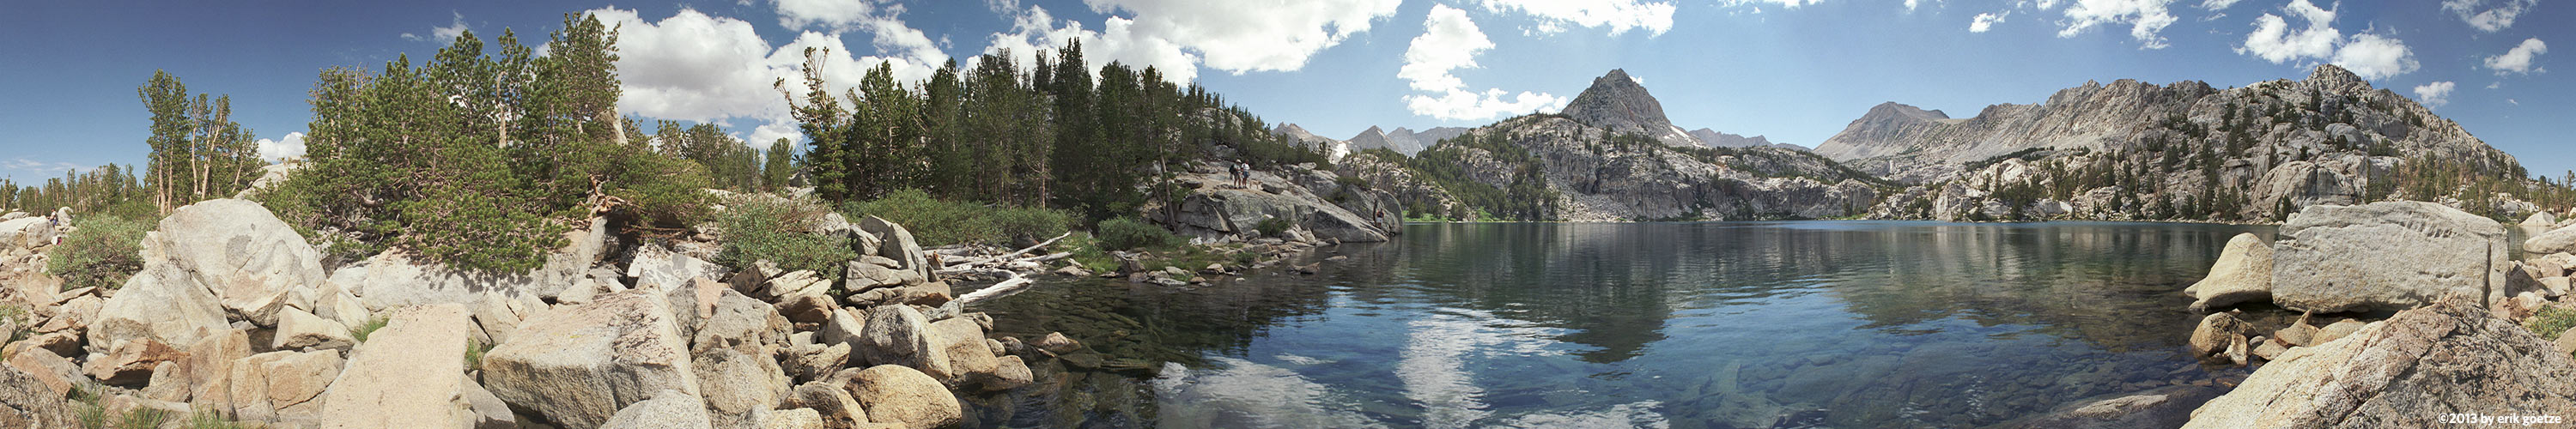 Lower Lamarck Lake, California